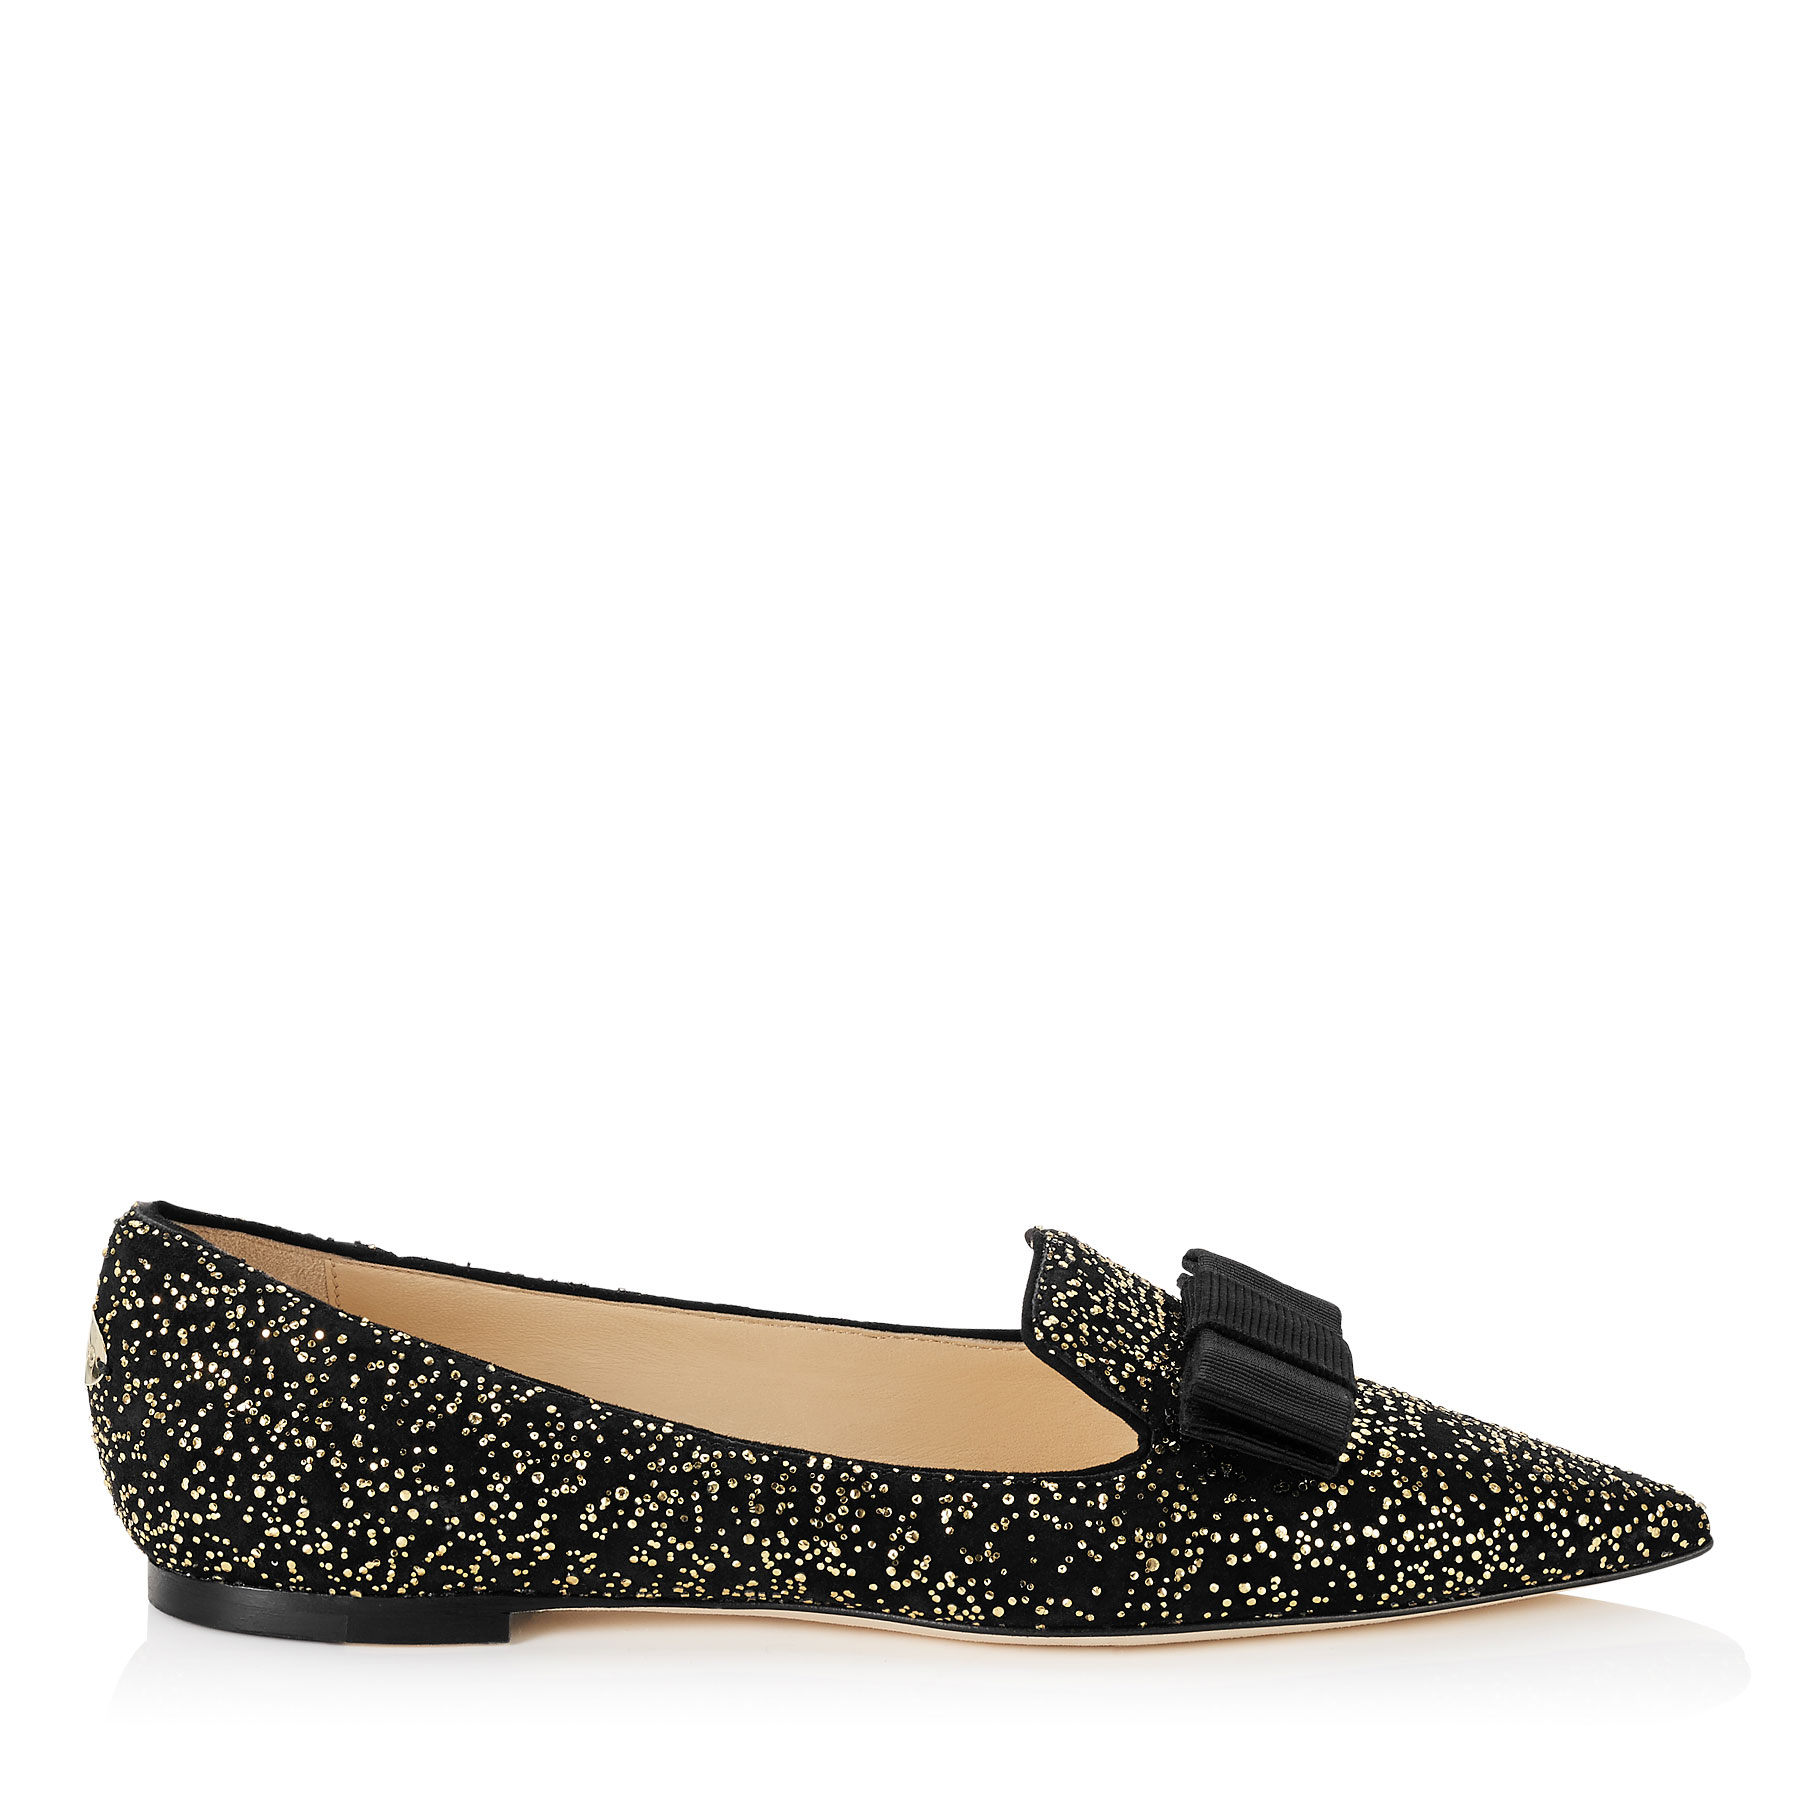 GALA Black Suede and Gold Dots Pointy Toe Flats with Bow Detail